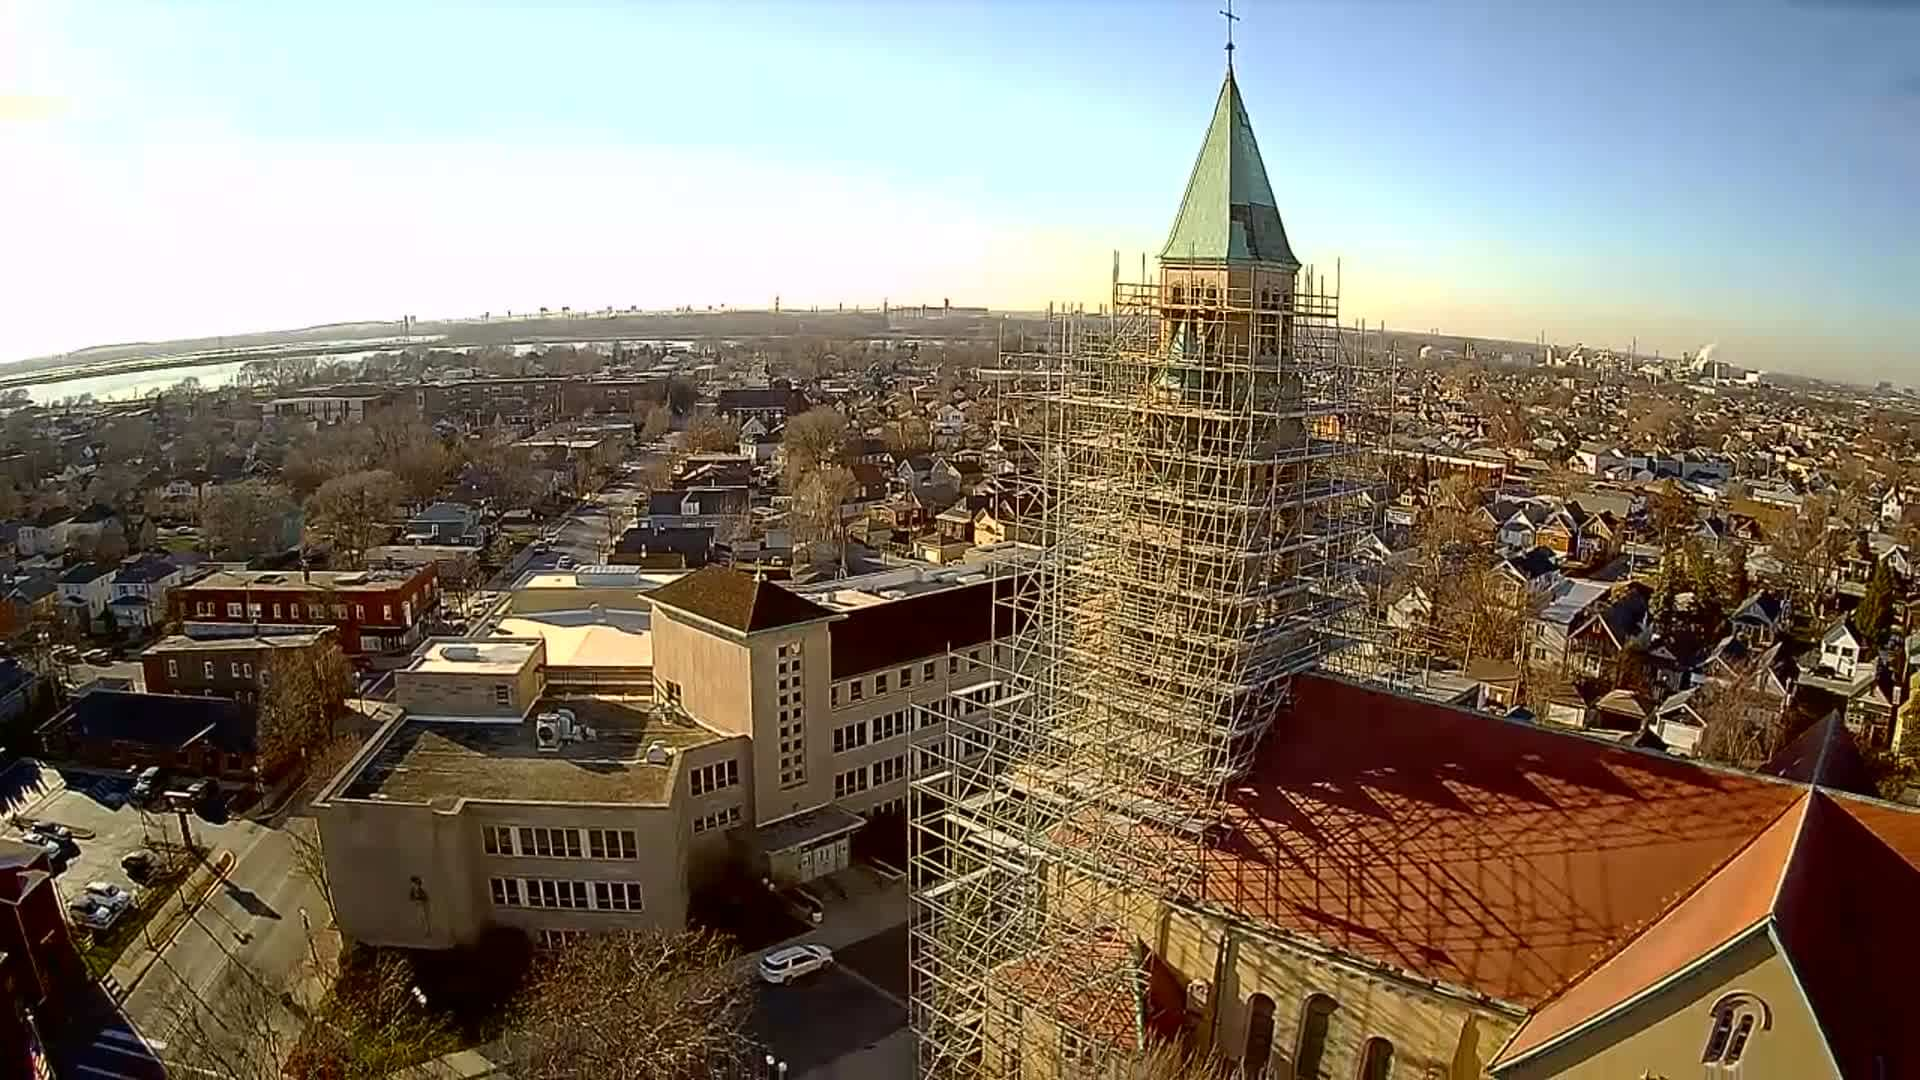 church restoration with scaffolding from International Equipment - close in view, drone footage